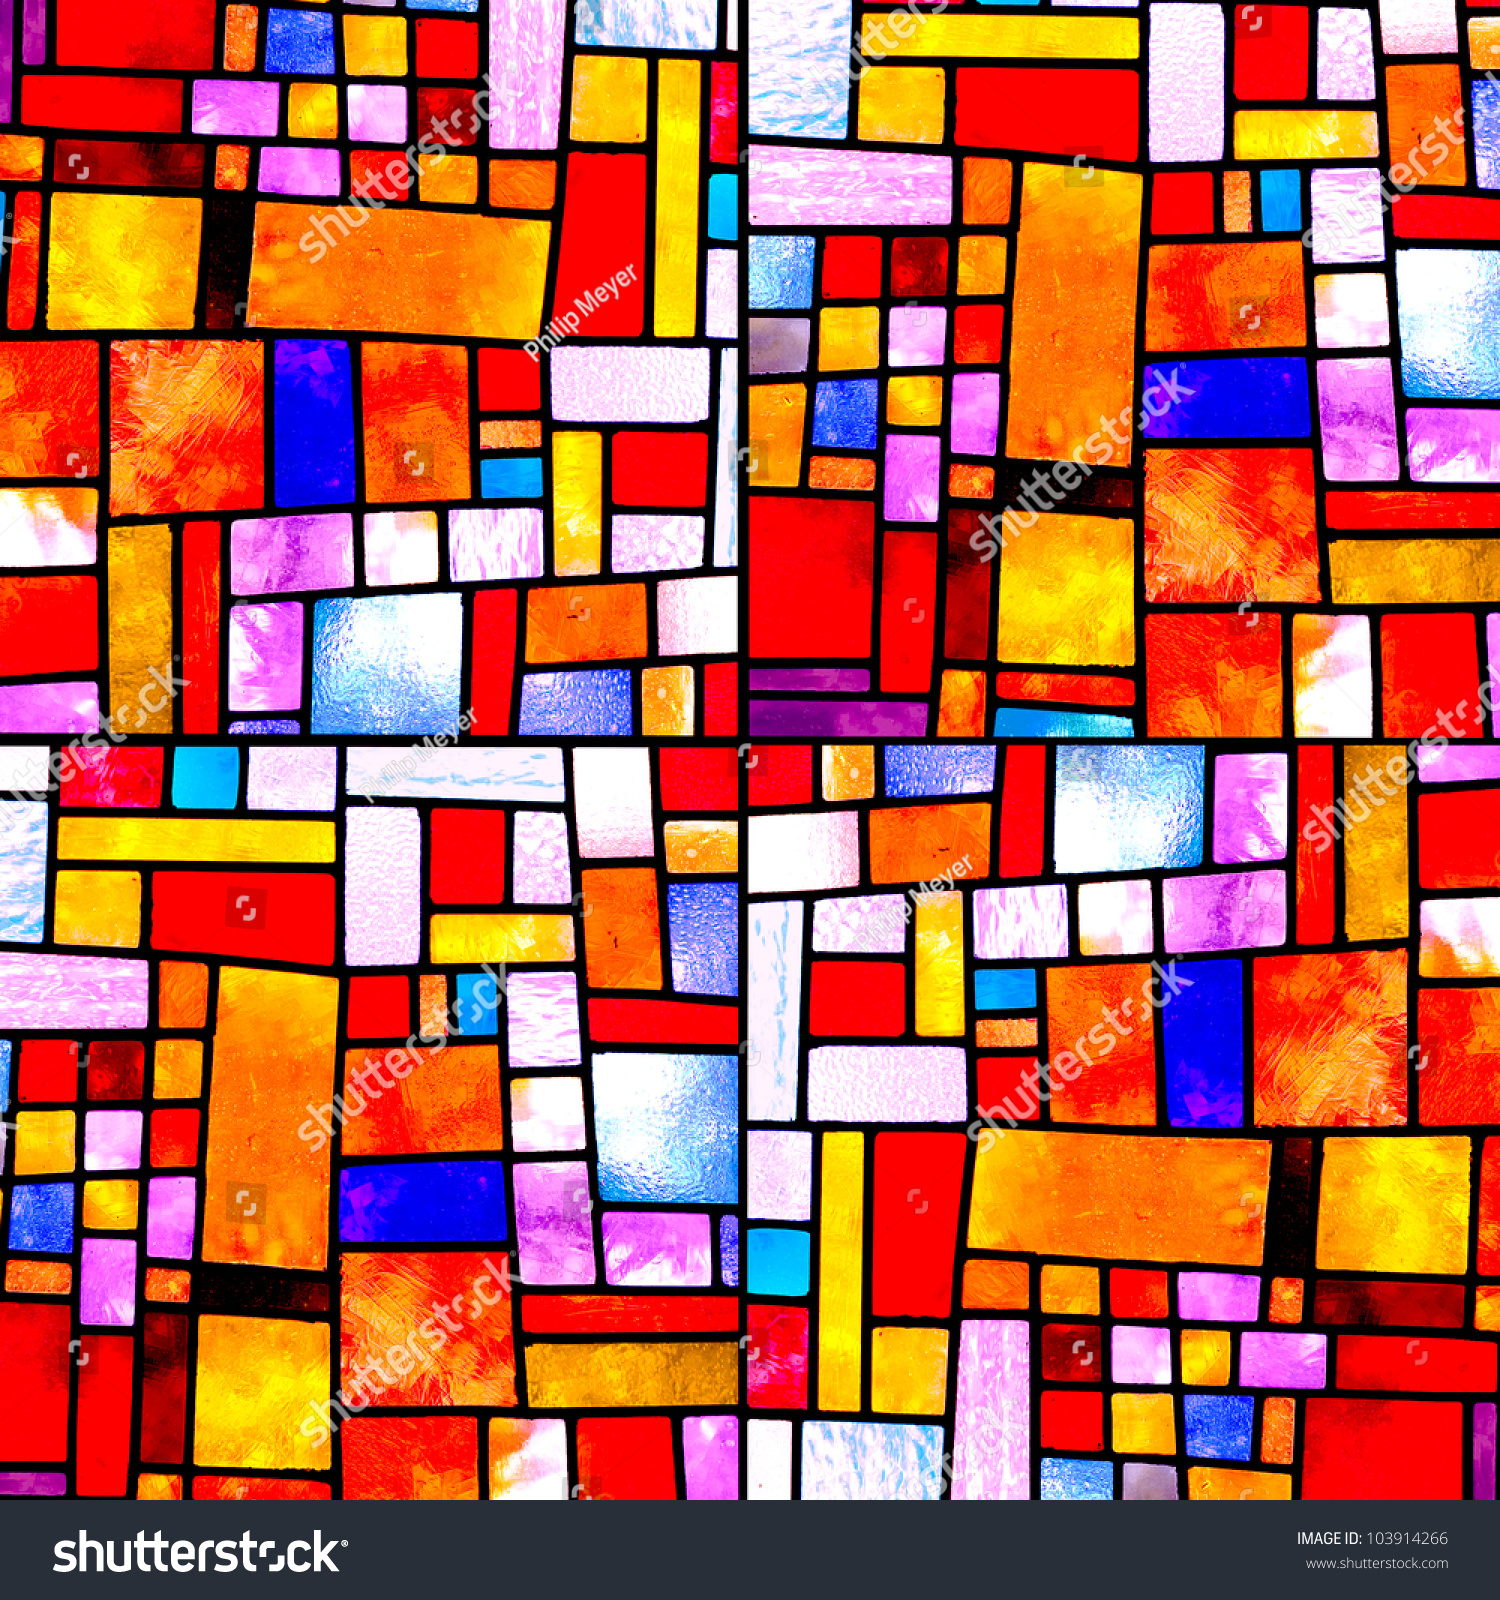 Image of a multicolored stained glass window with irregular random block pattern, square format #103914266